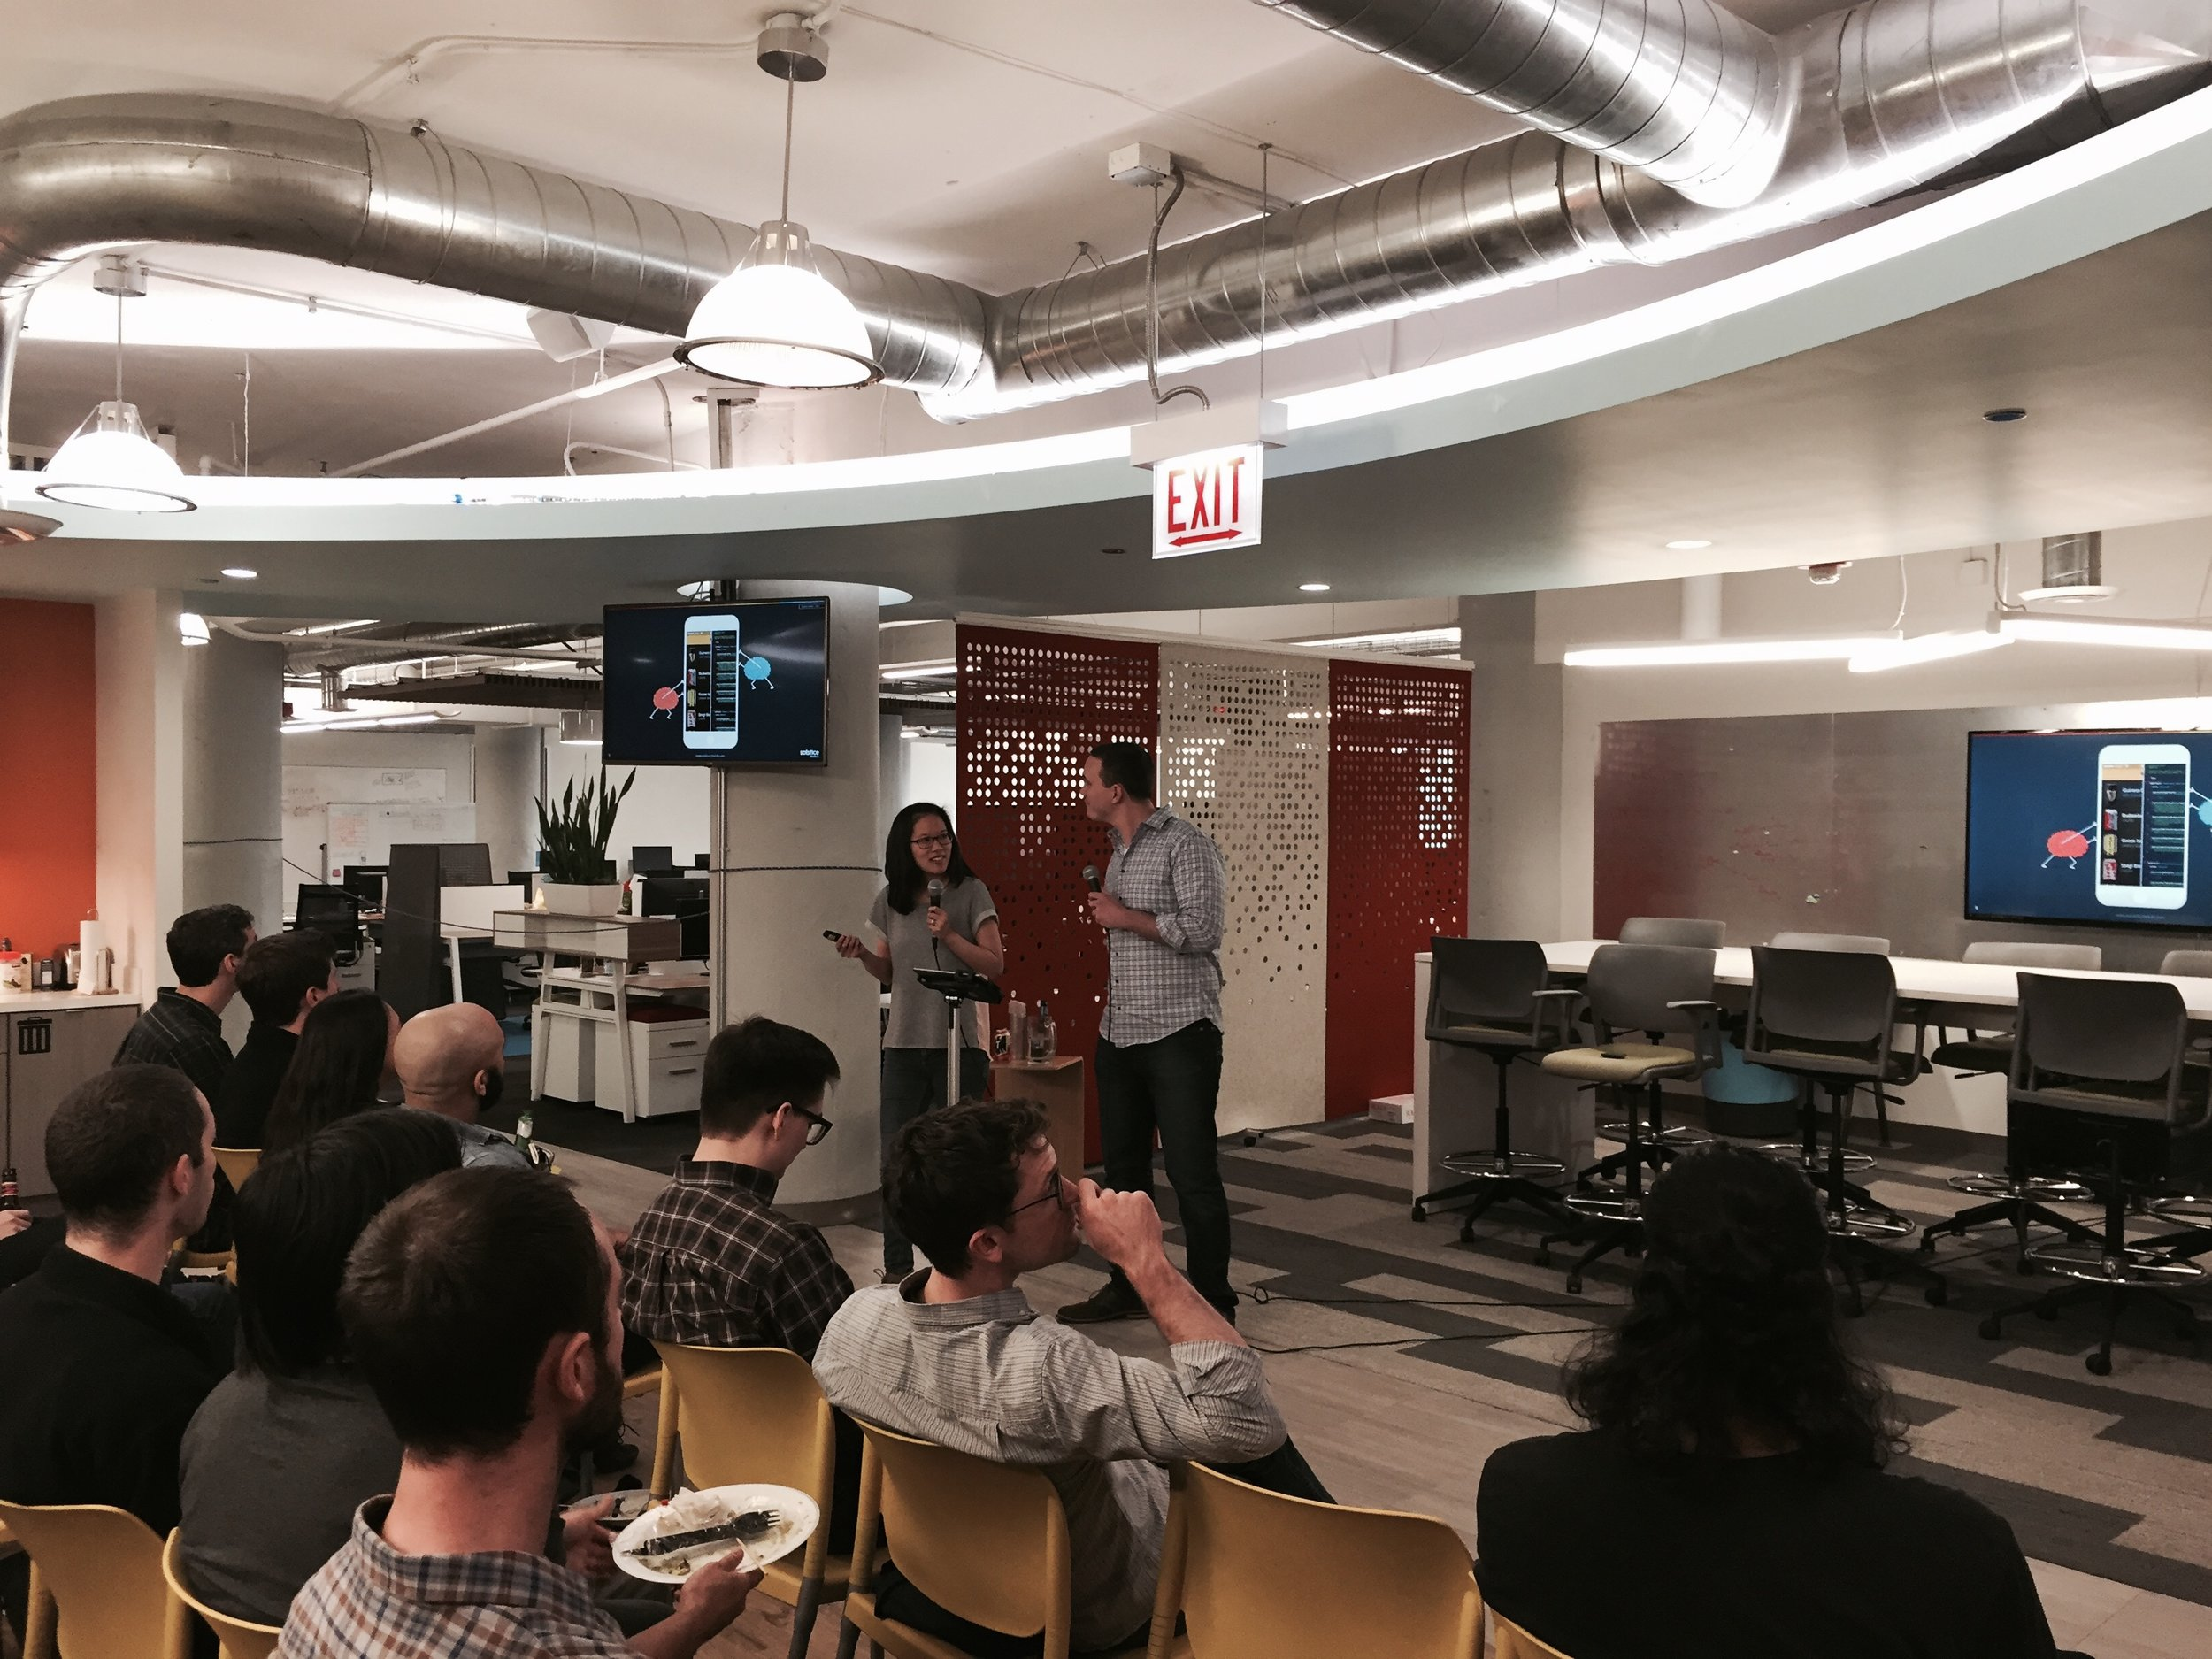 Speaking about designer developer collaboration at the  Art & Science of IxD Meetup  in Chicago.